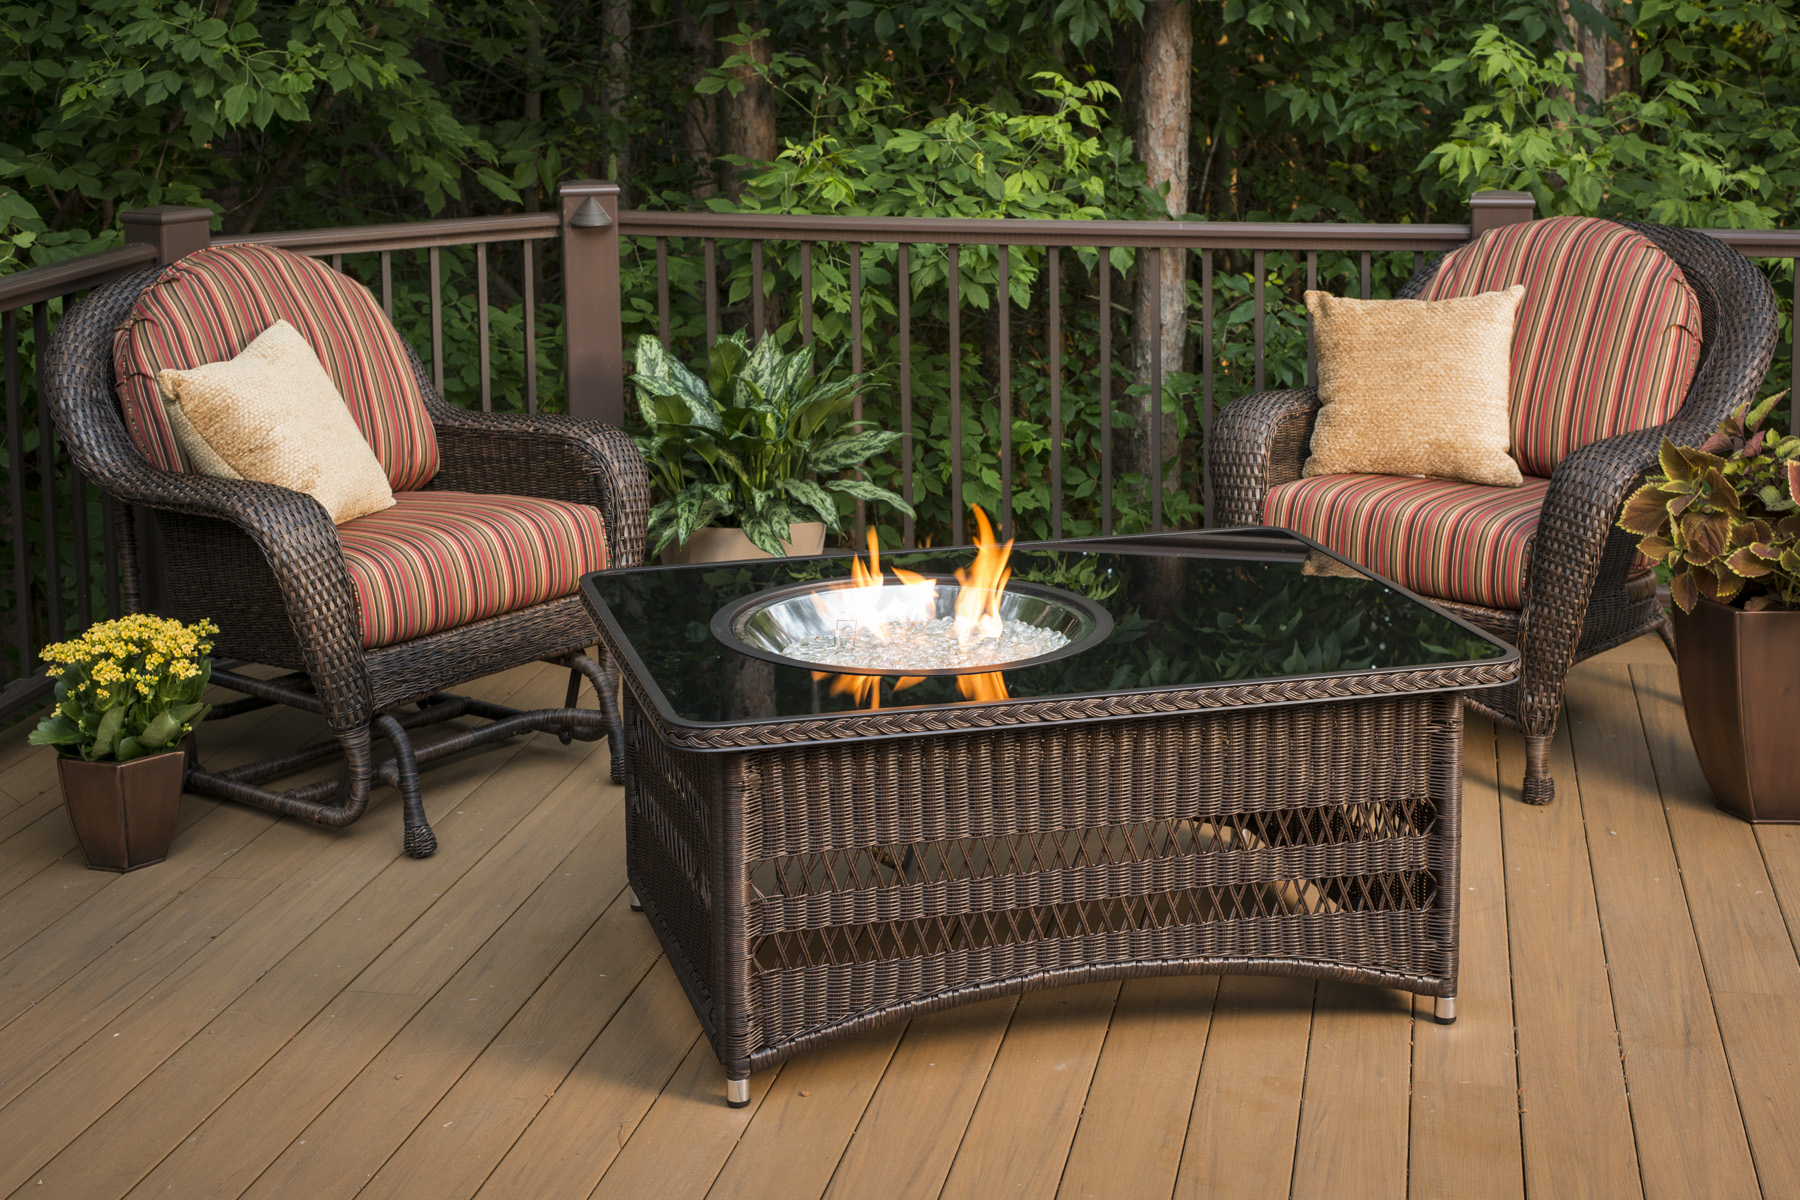 Deck Fire Pit Table Design And Ideas intended for dimensions 1800 X 1200